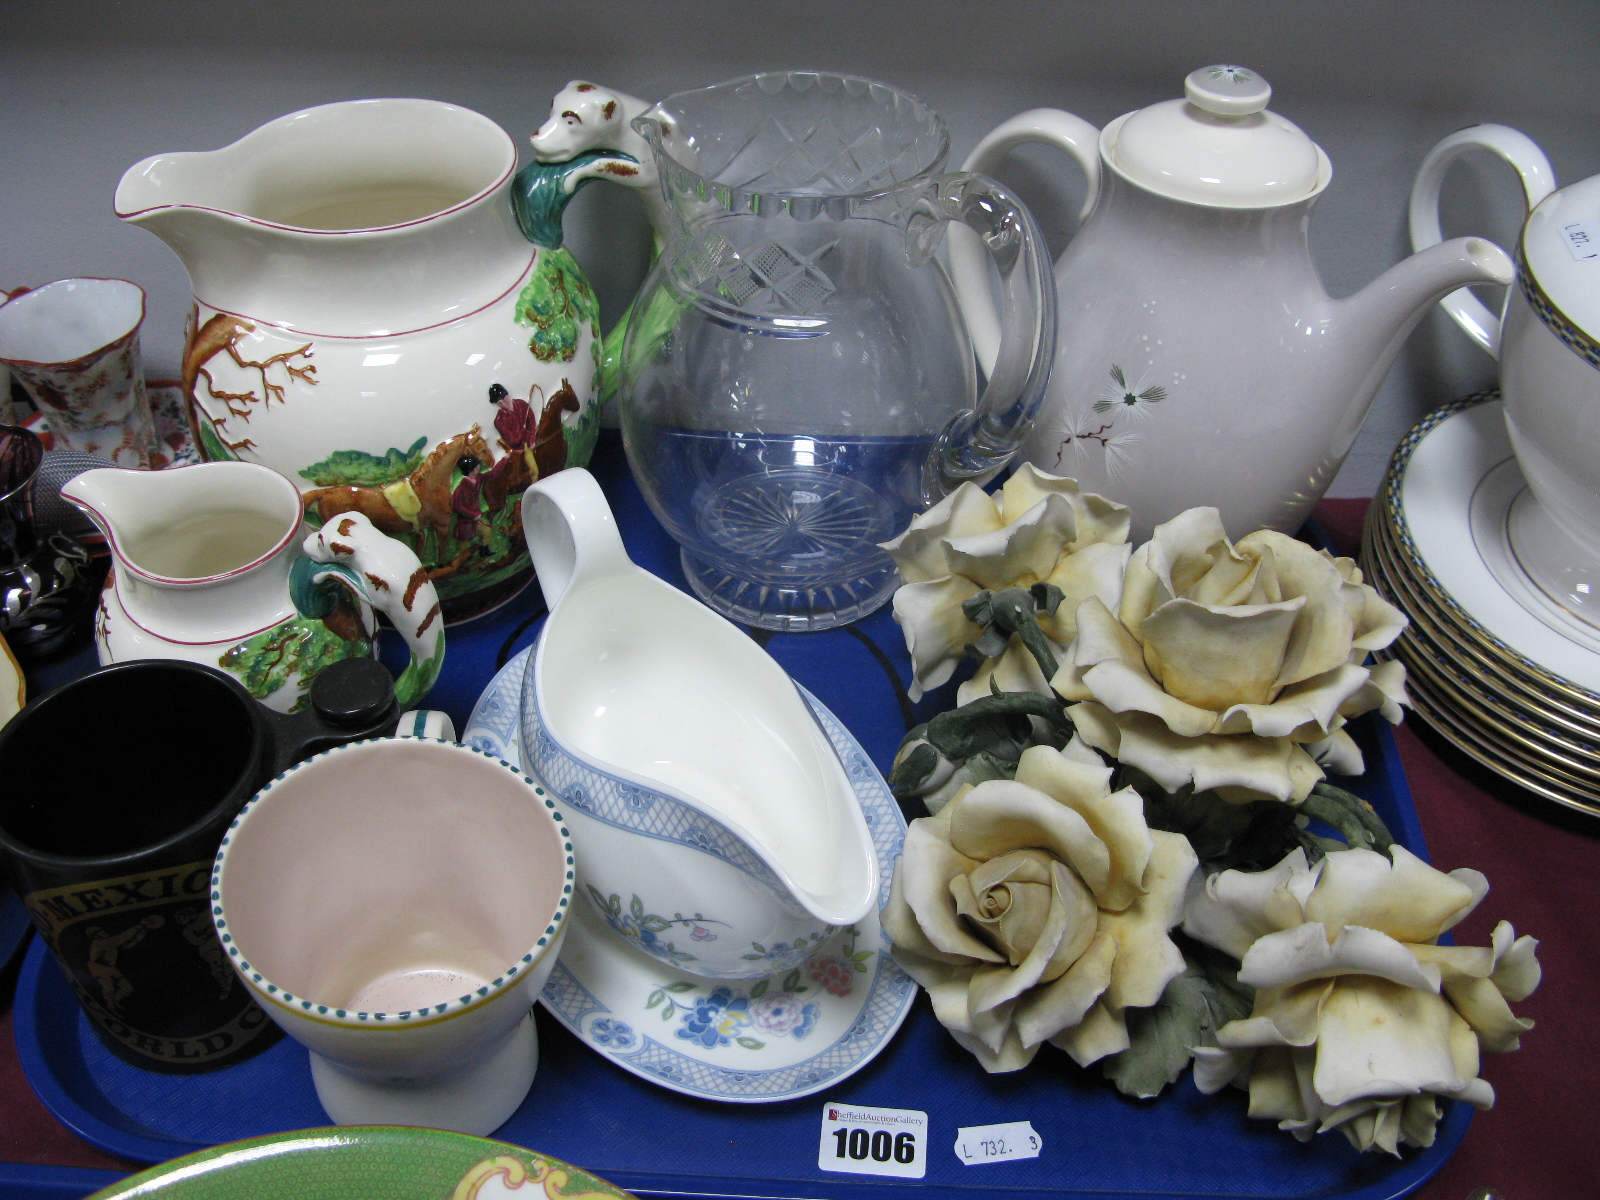 Lot 1006 - A Doulton 'Forrest Pine' Coffee Pot, Wedgwood 'John Peel' and glass jugs etc:- One Tray